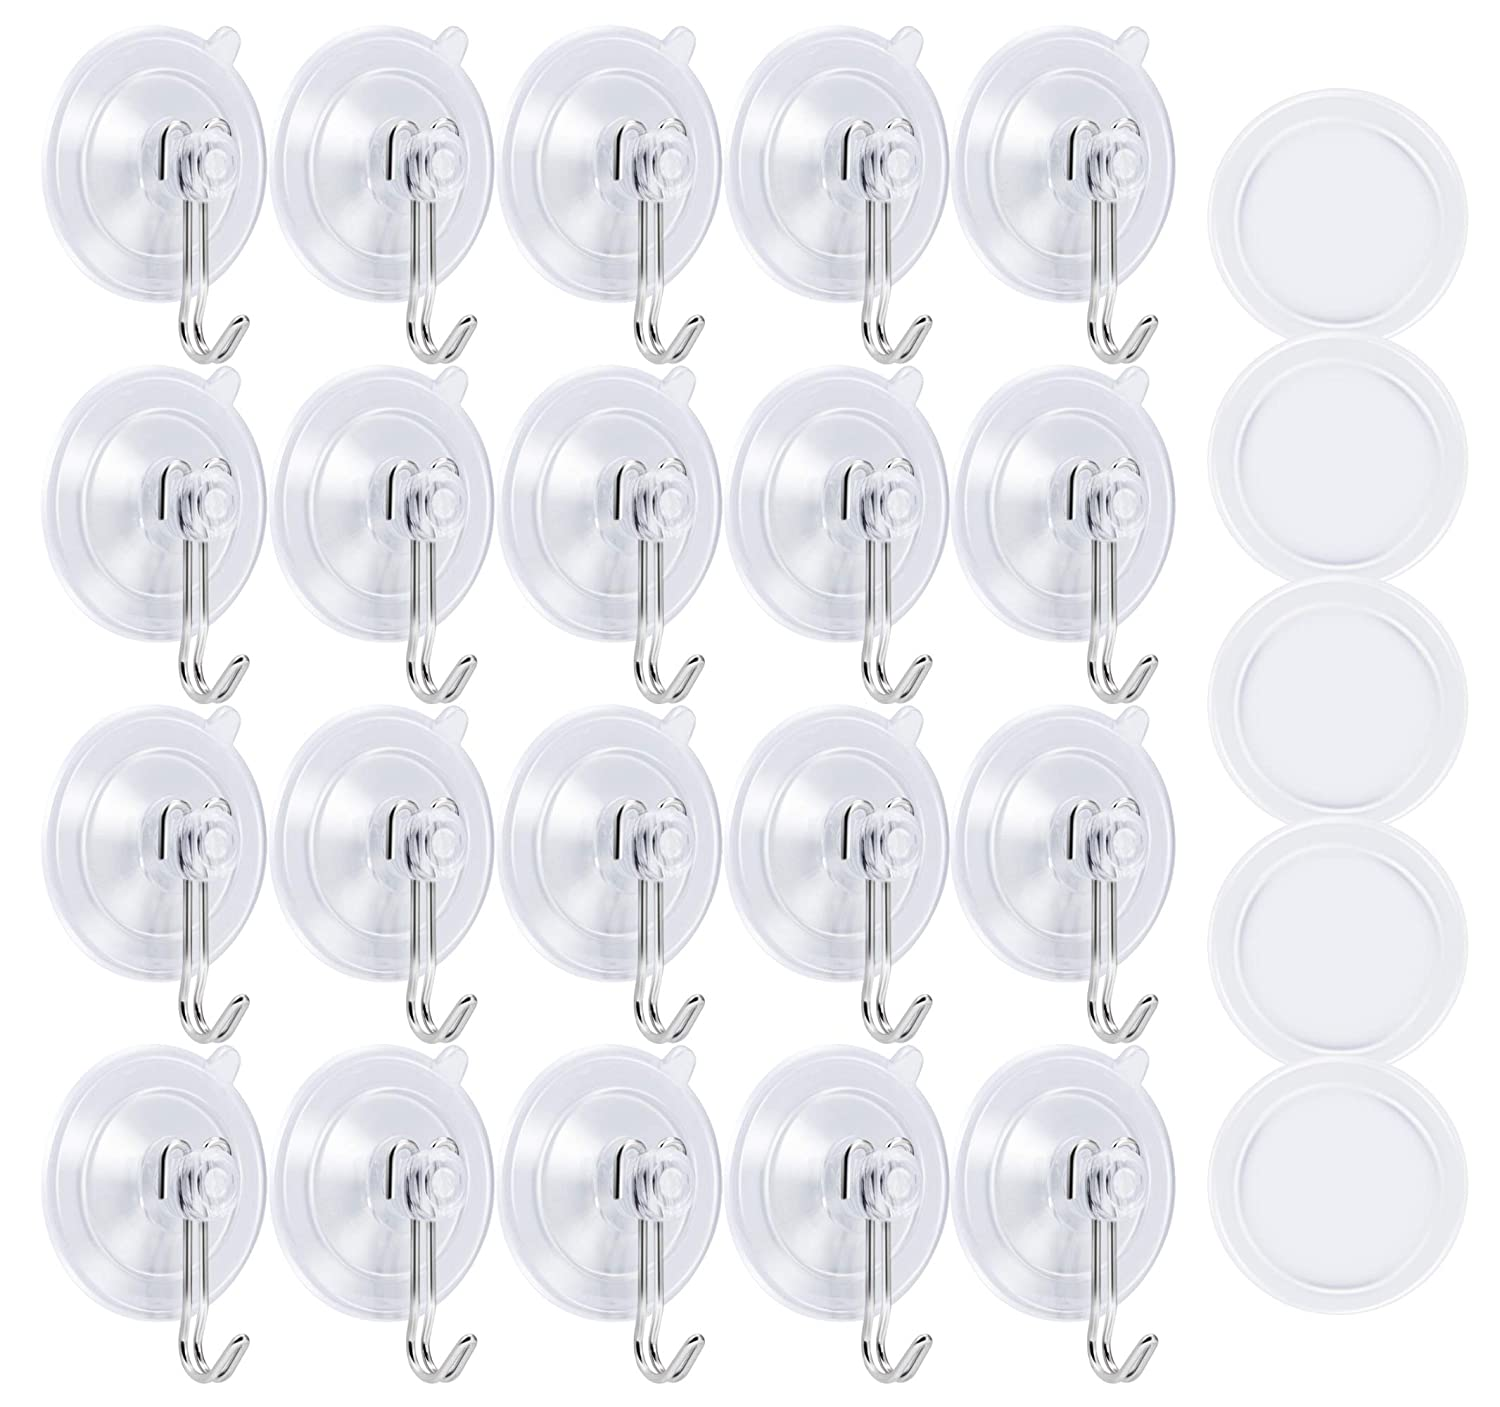 Famistar 20 Pieces Bathroom Kitchen Suction Cup Wall Hooks Hangers